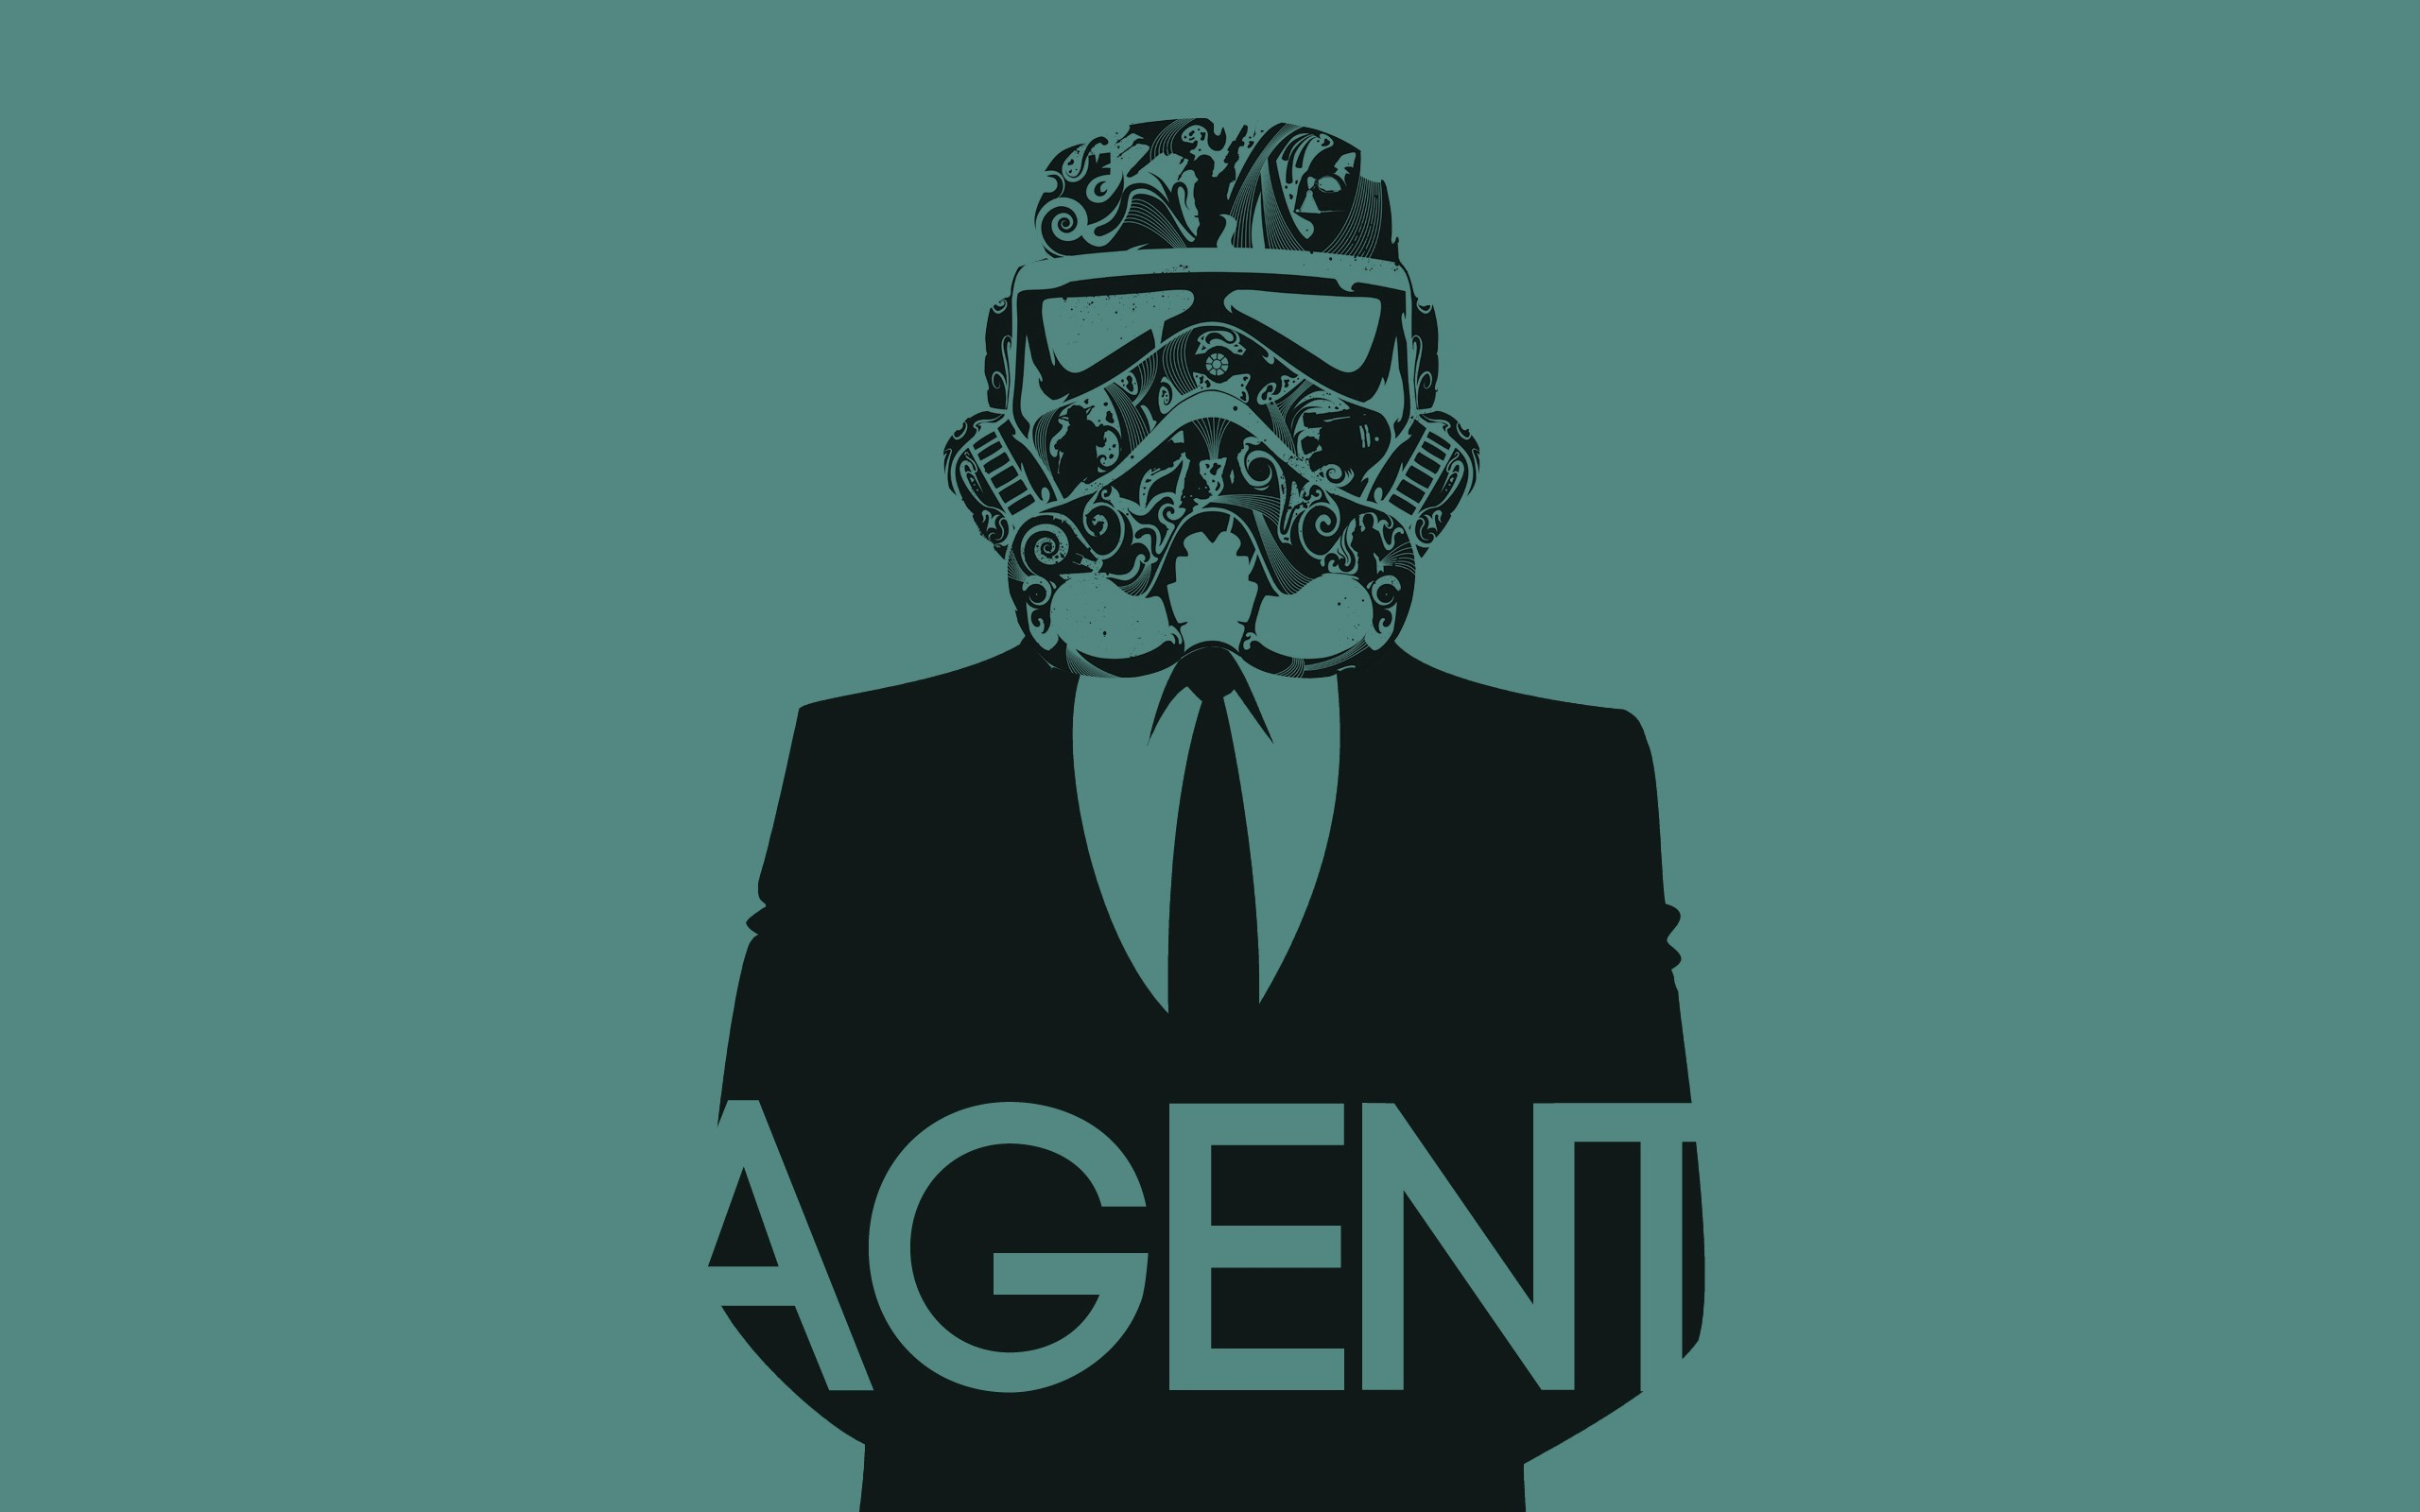 Star Wars Agent Stormtroopers Wallpaper